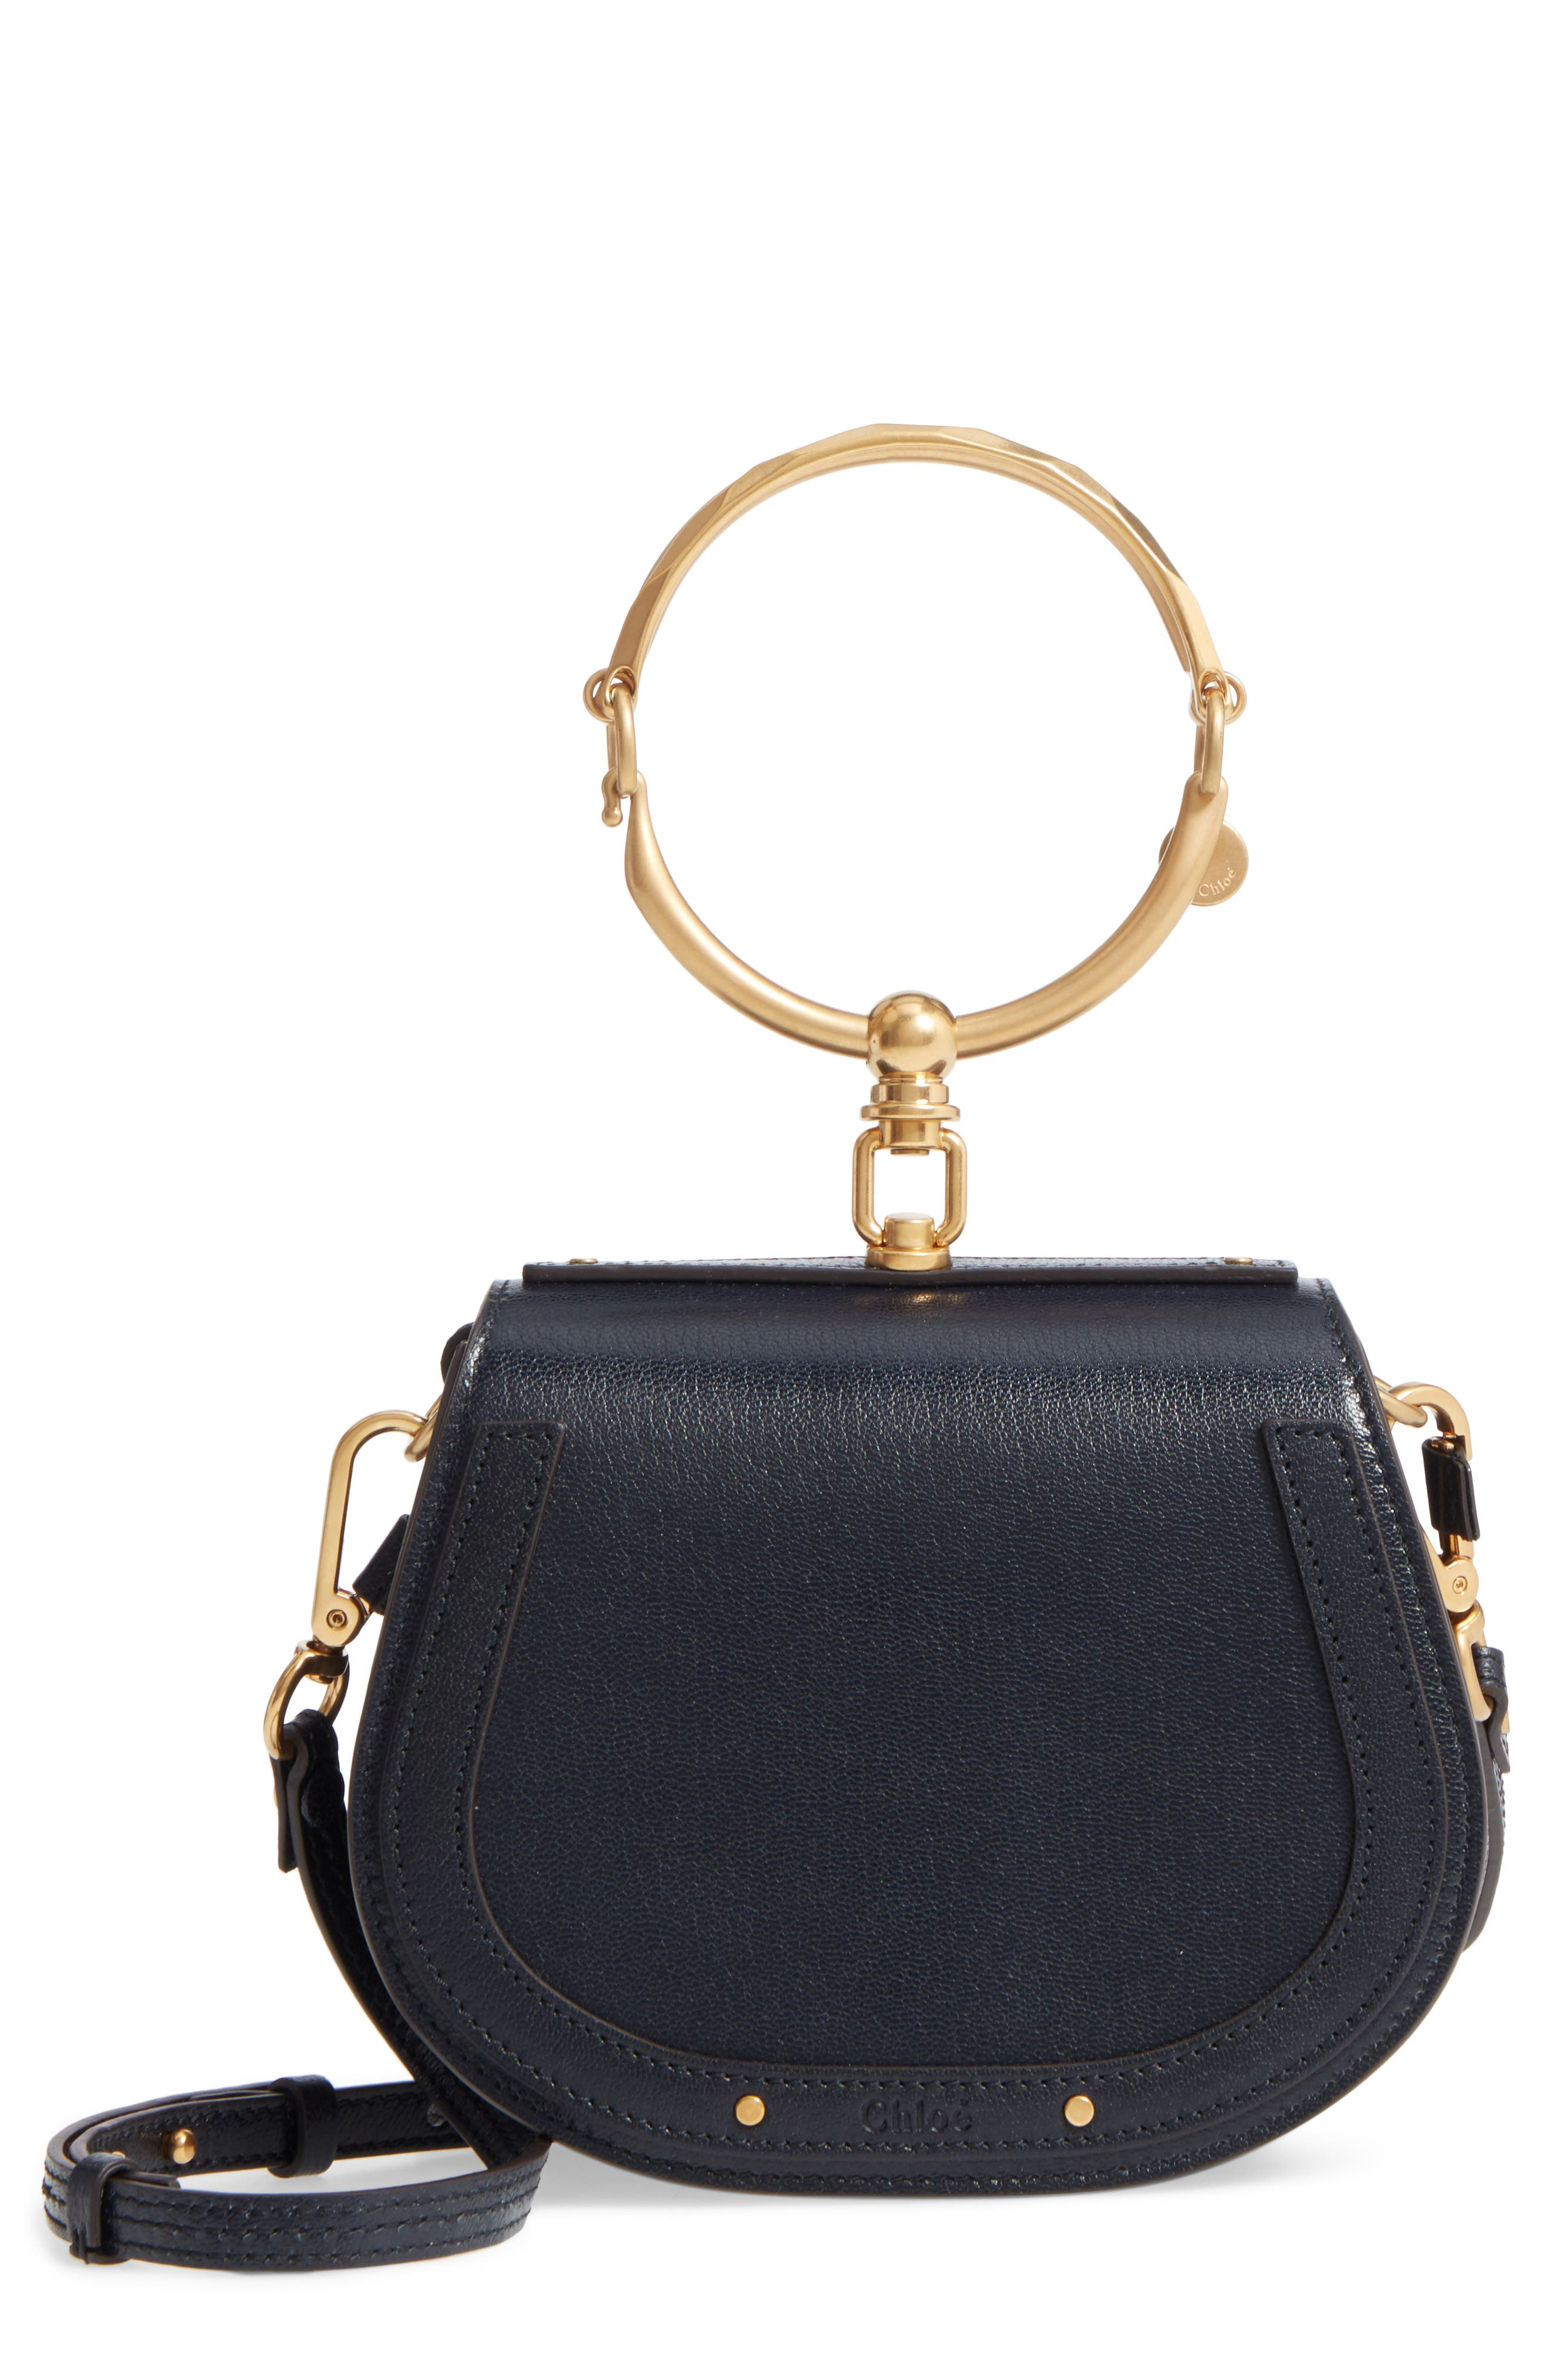 Alternate Image 1 Selected - Chloé Small Nile Leather Crossbody Bag